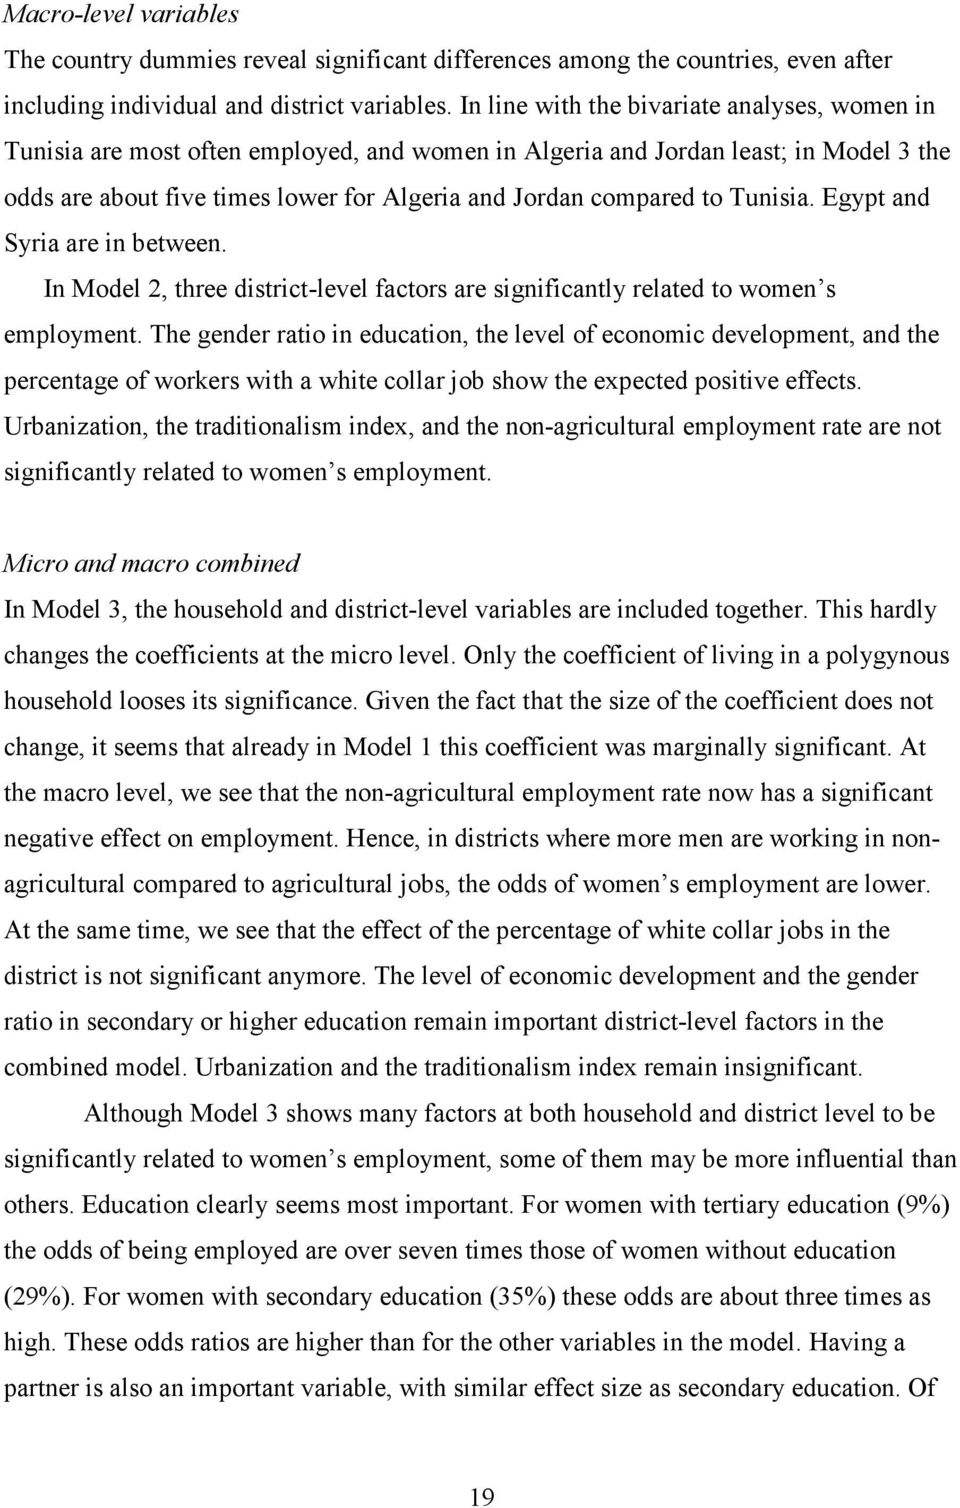 Tunisia. Egypt and Syria are in between. In Model 2, three district-level factors are significantly related to women s employment.